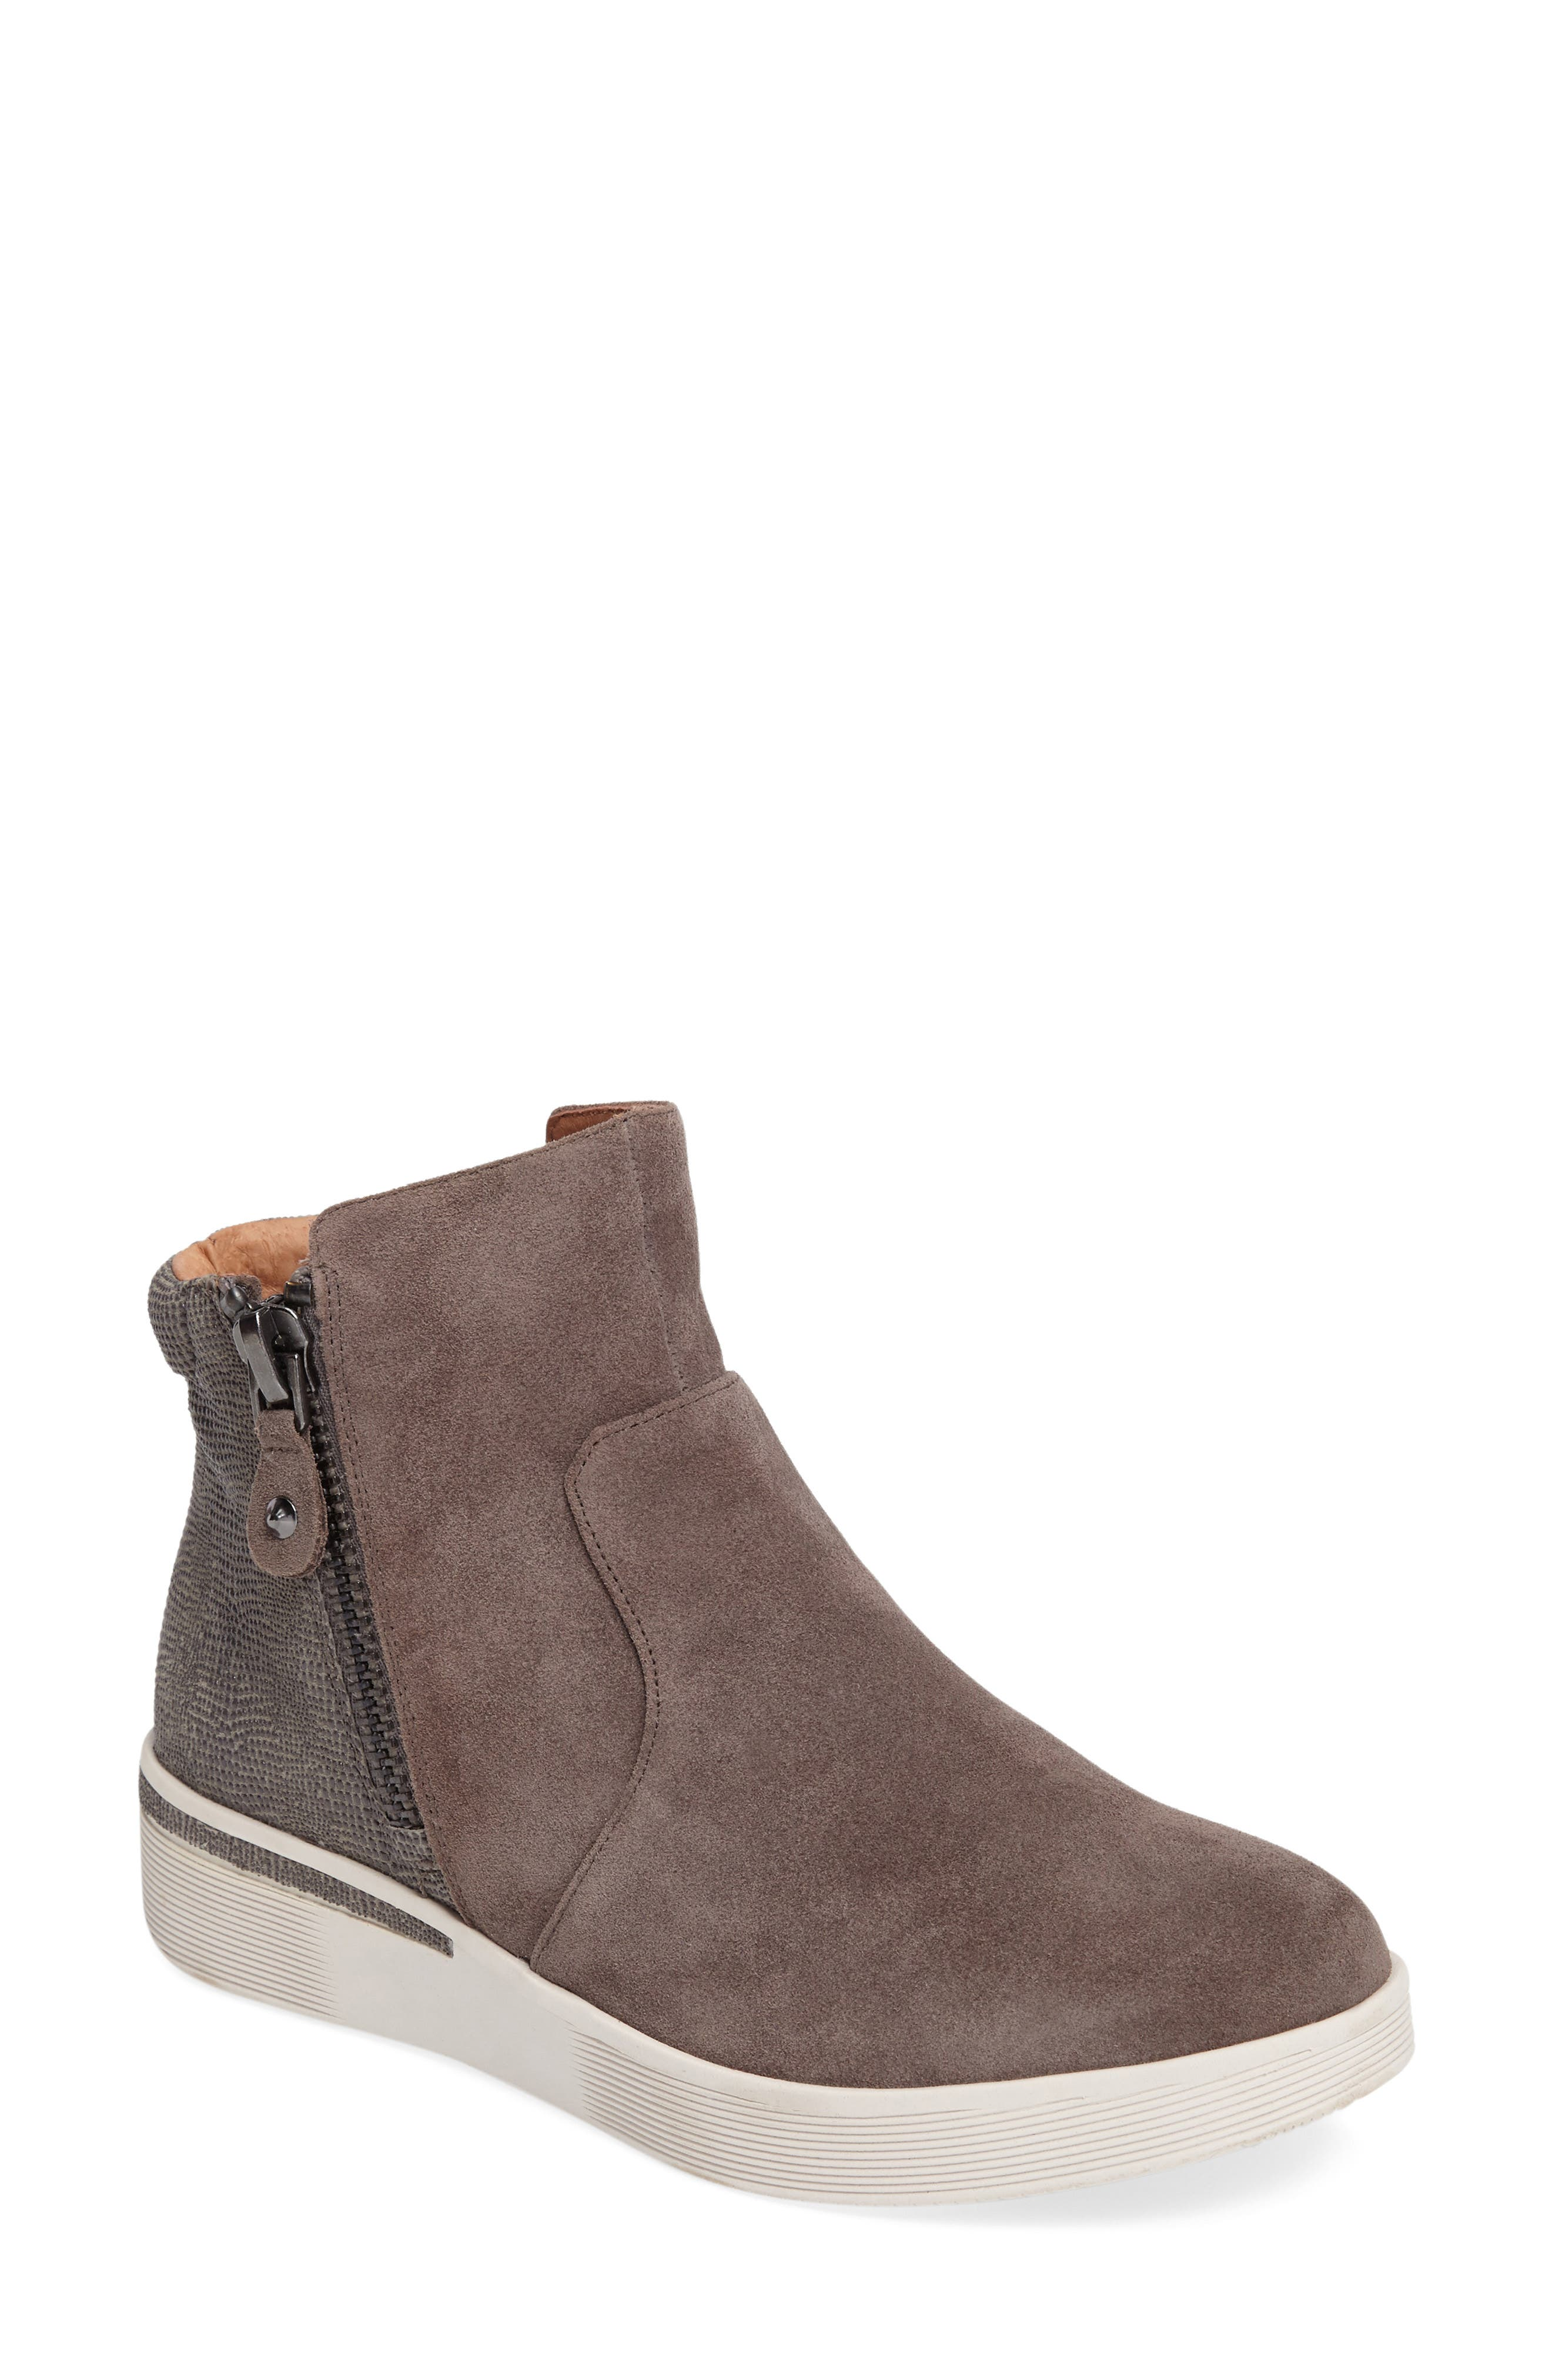 'Harper' Sneaker Bootie,                             Main thumbnail 1, color,                             GREY LEATHER